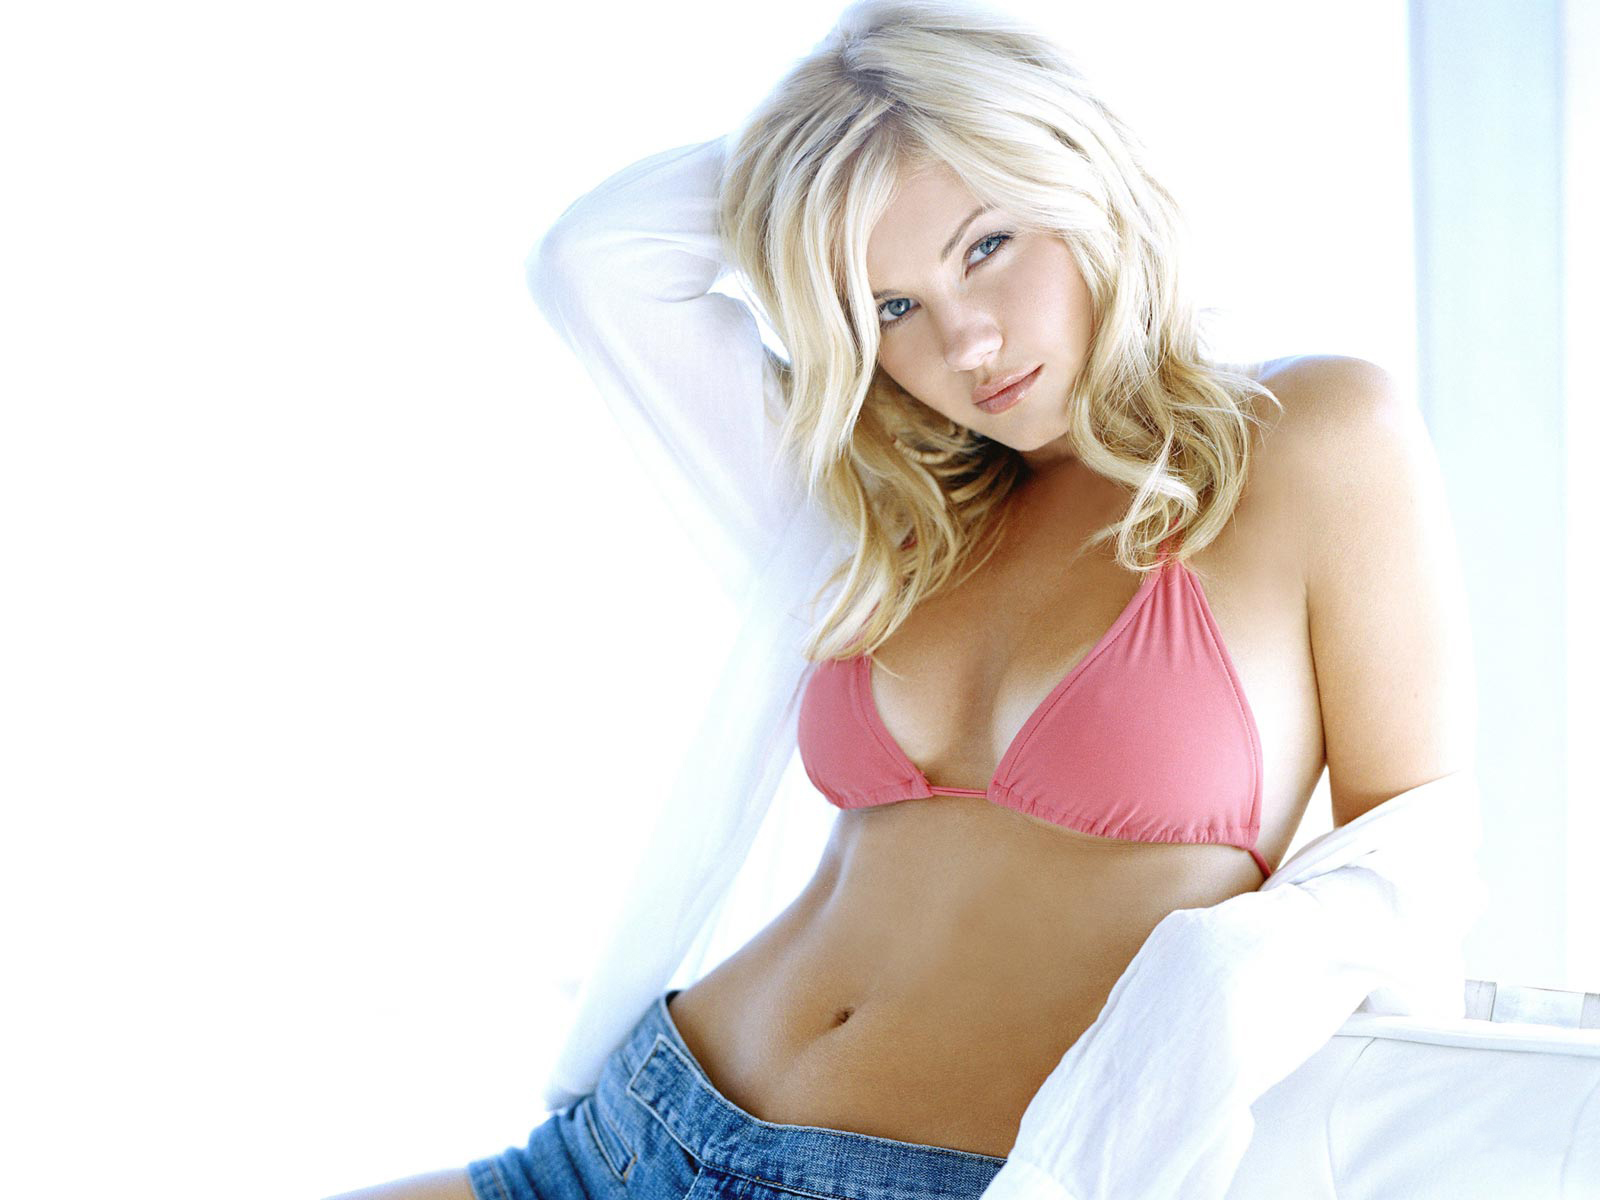 Hollywood Stars Elisha Cuthbert Hot HD Wallpaper - HD Wallpaper